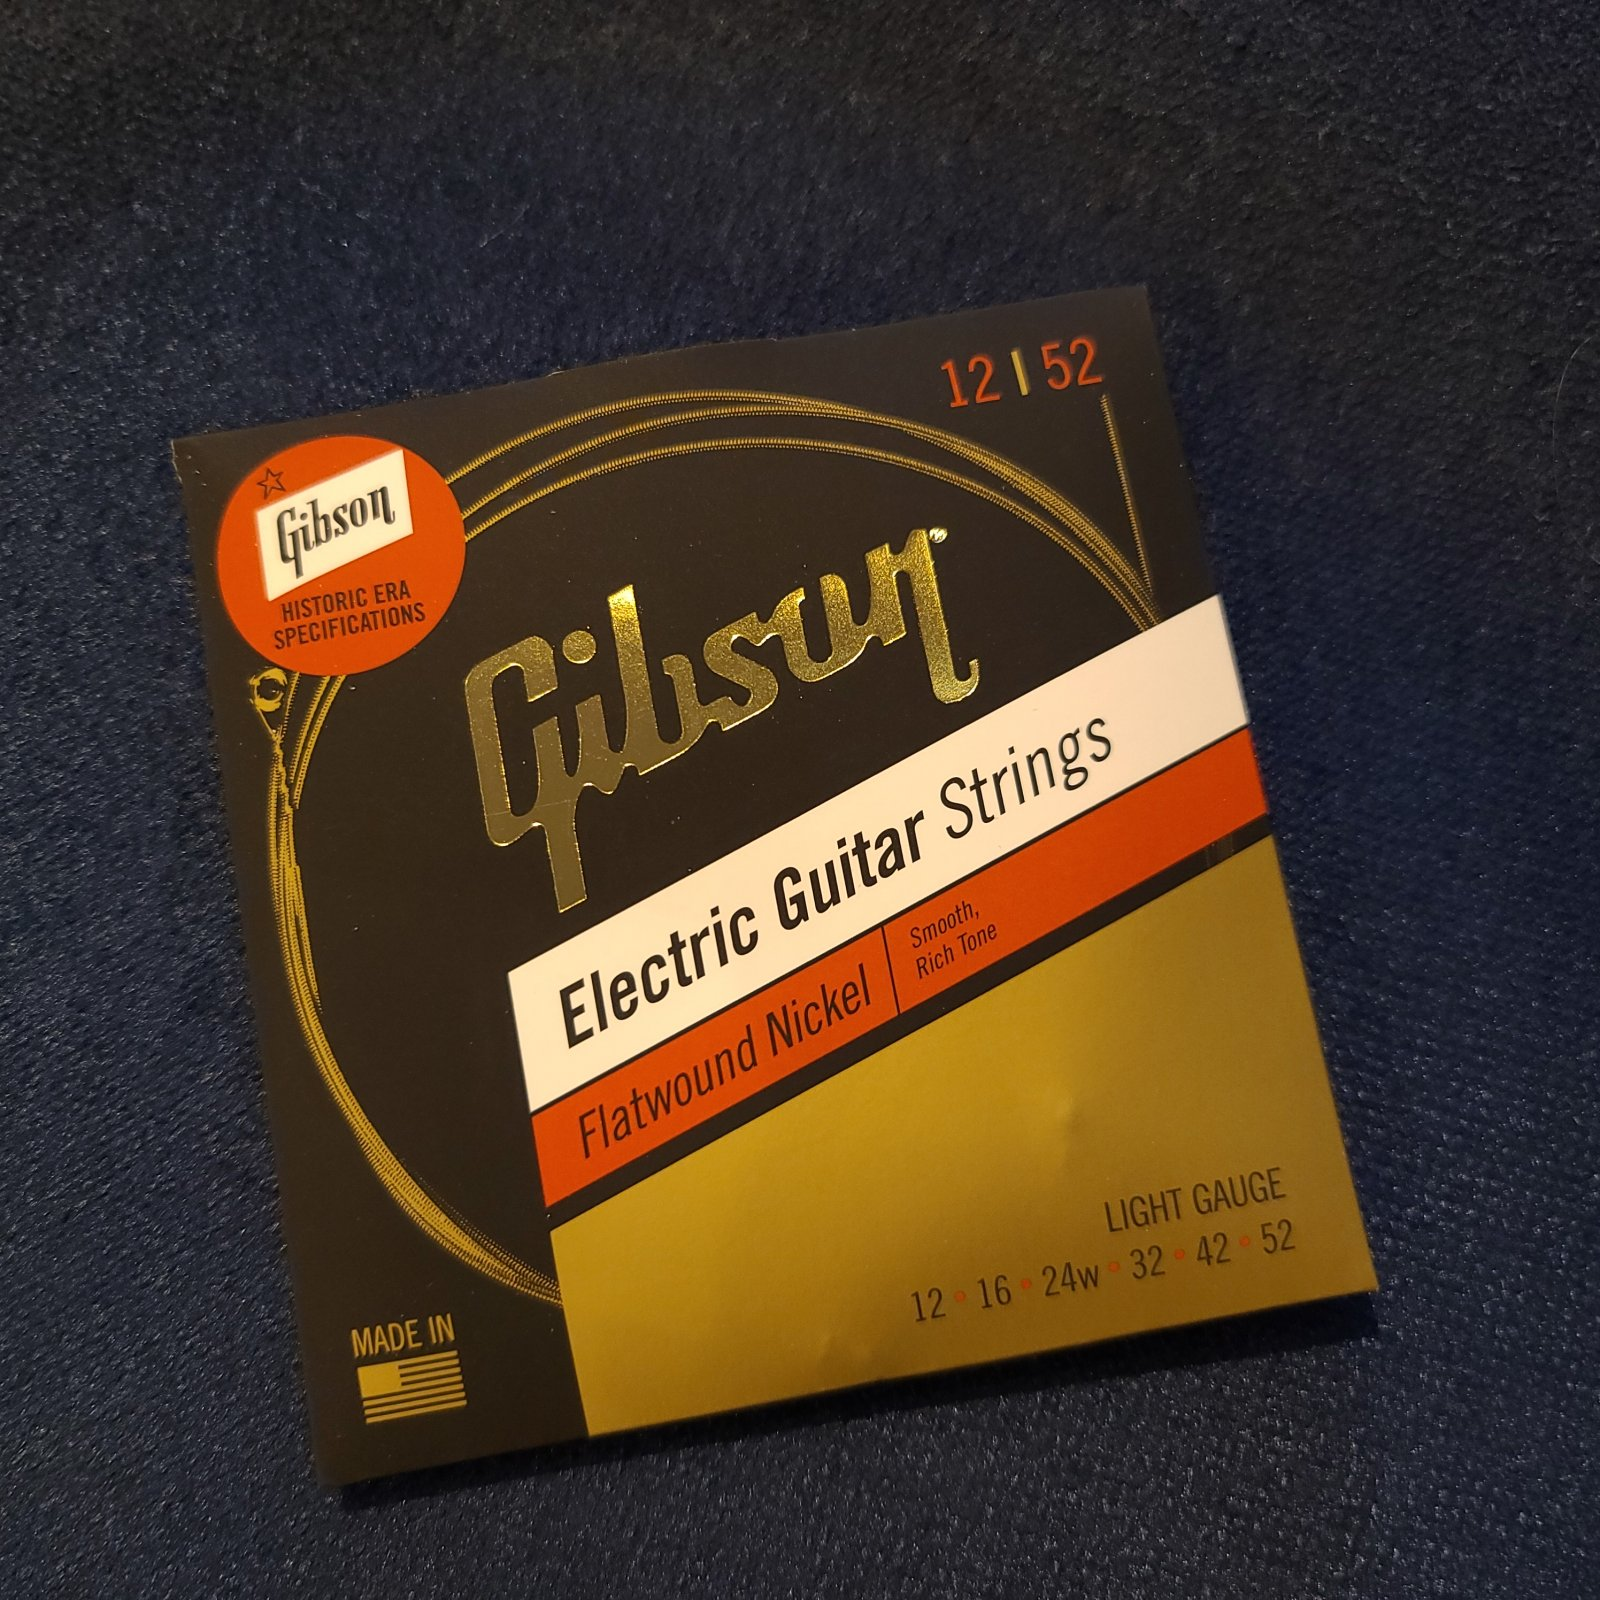 Gibson Flatwound Electric Strings 12-52 Historic Era Specifications